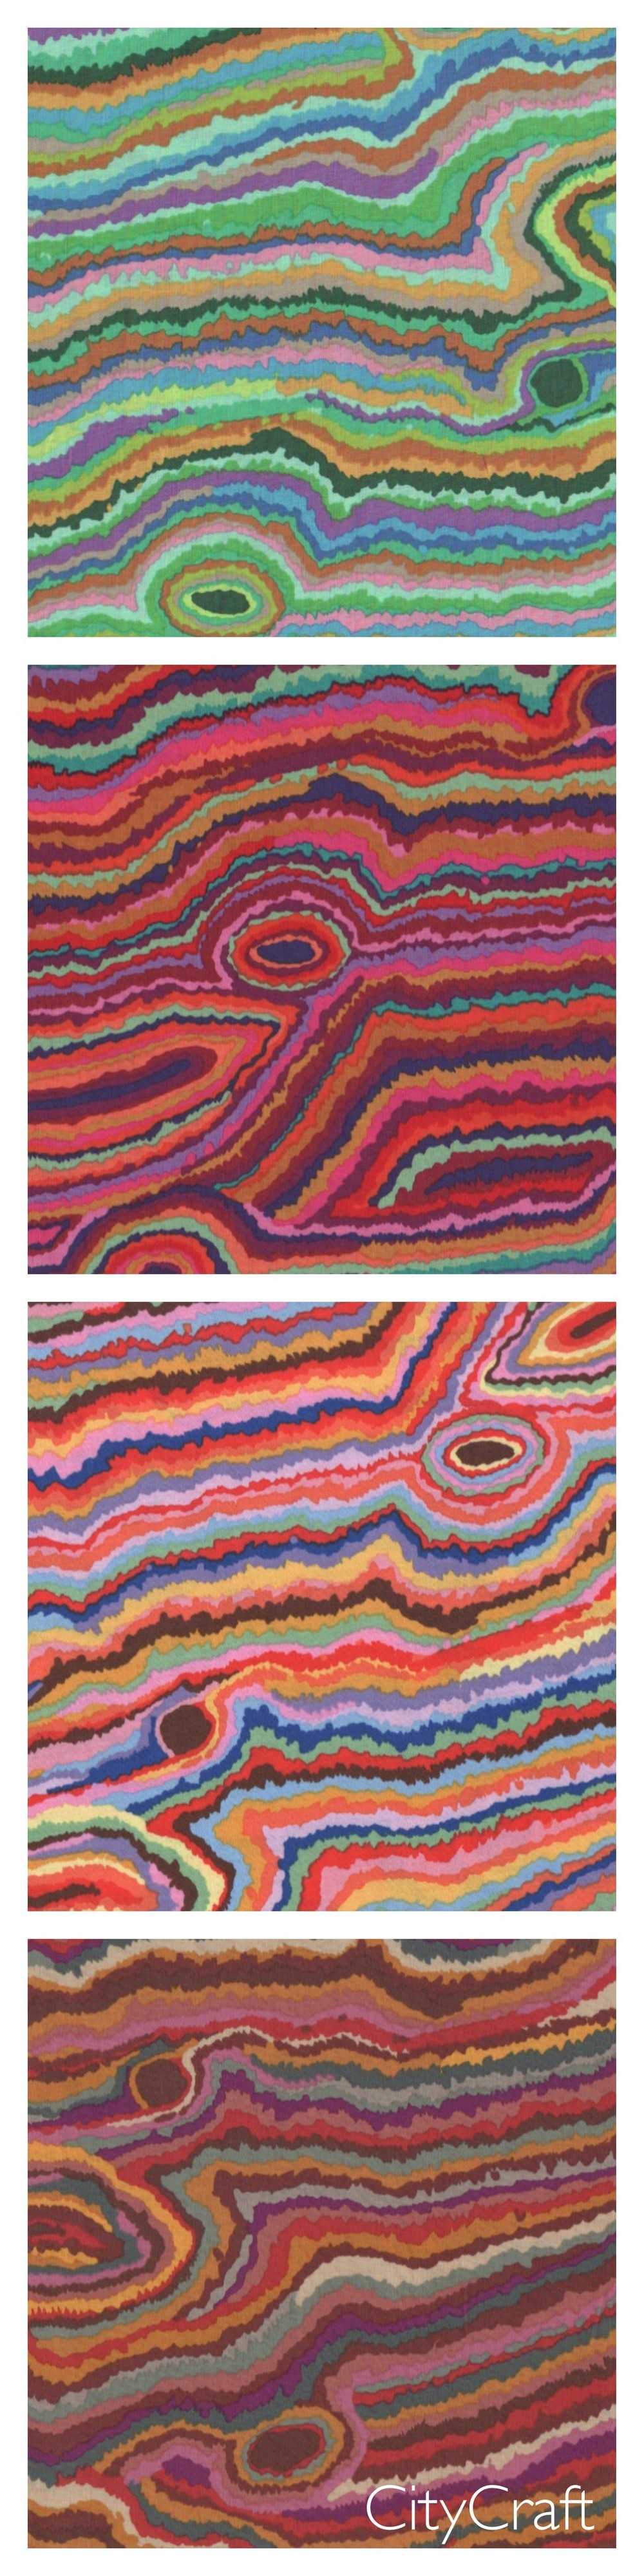 Kaffe Fassett Jupiter Print Fabric at CityCraft